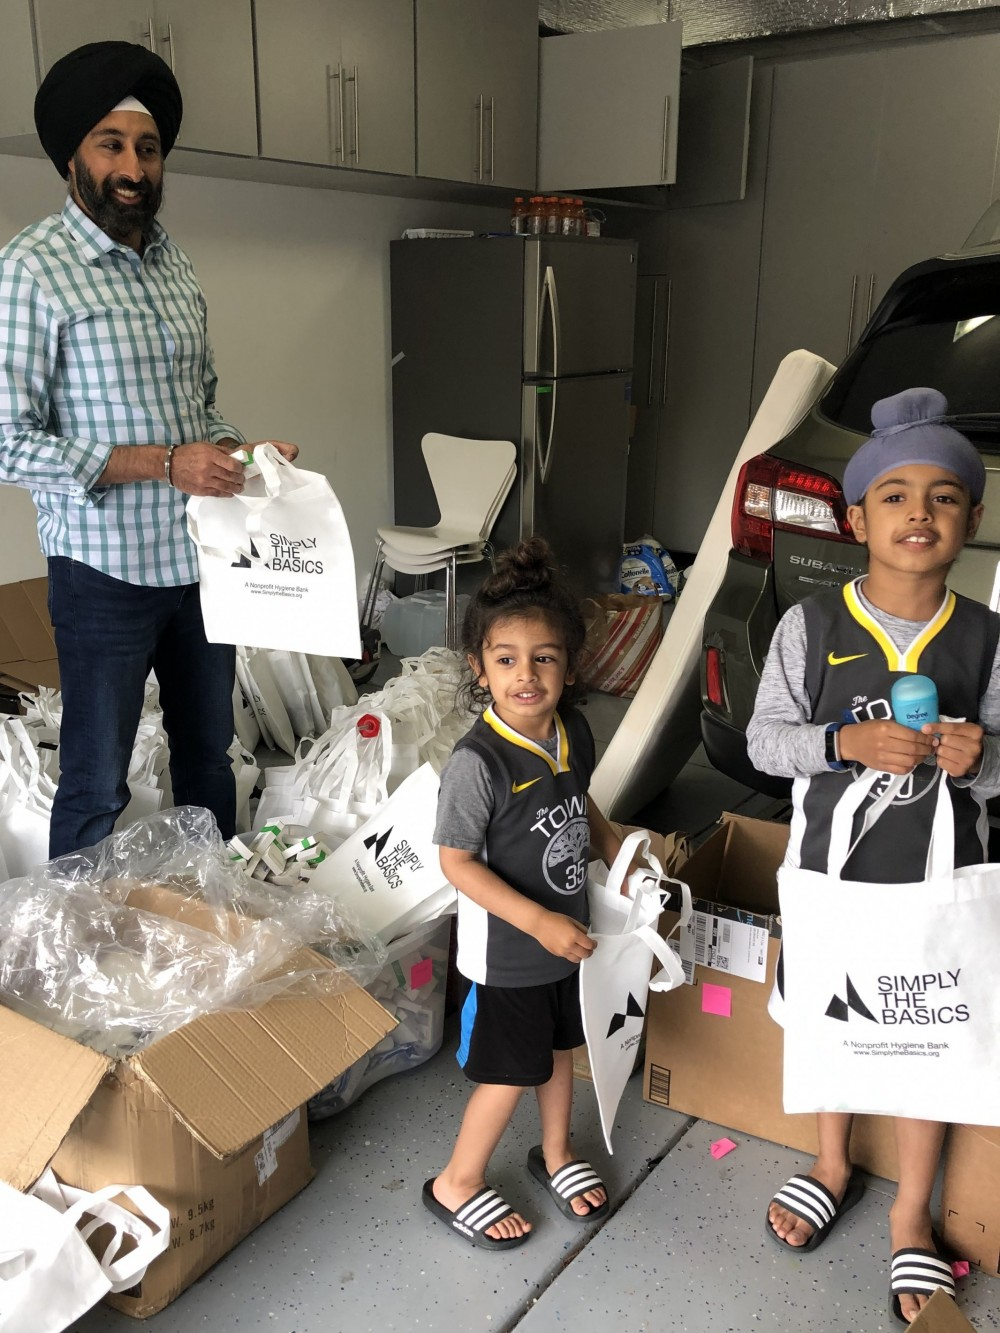 Baljeet Singh, Trustee and Parent, prepares hygiene kits with his sons for delivery to Simply the...